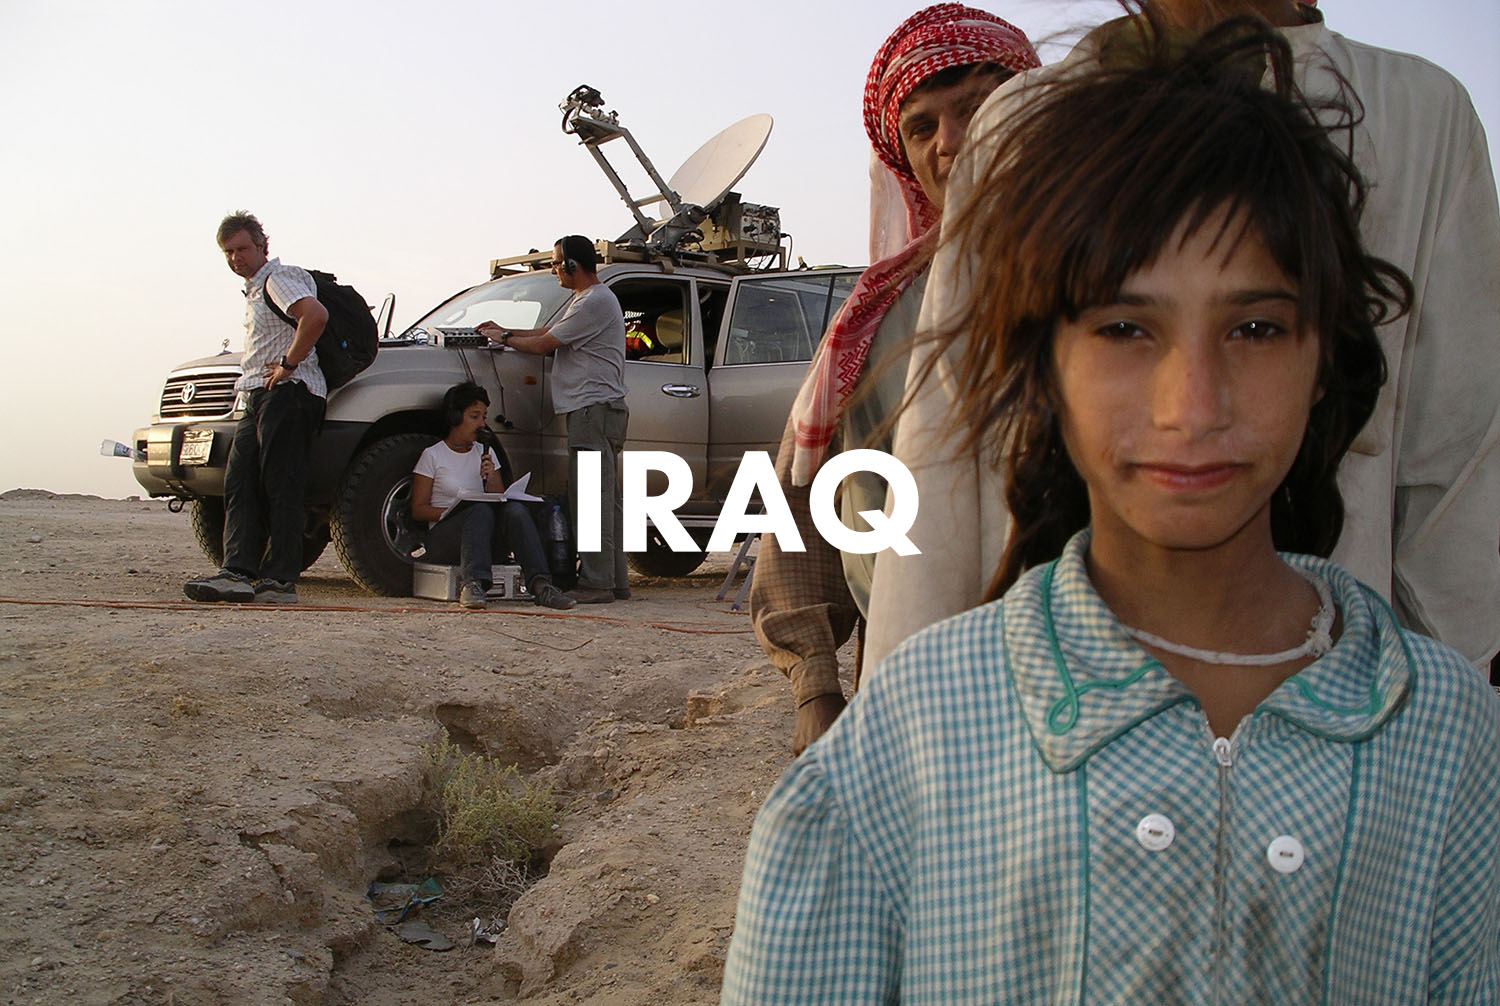 iraq-art-archive.jpg